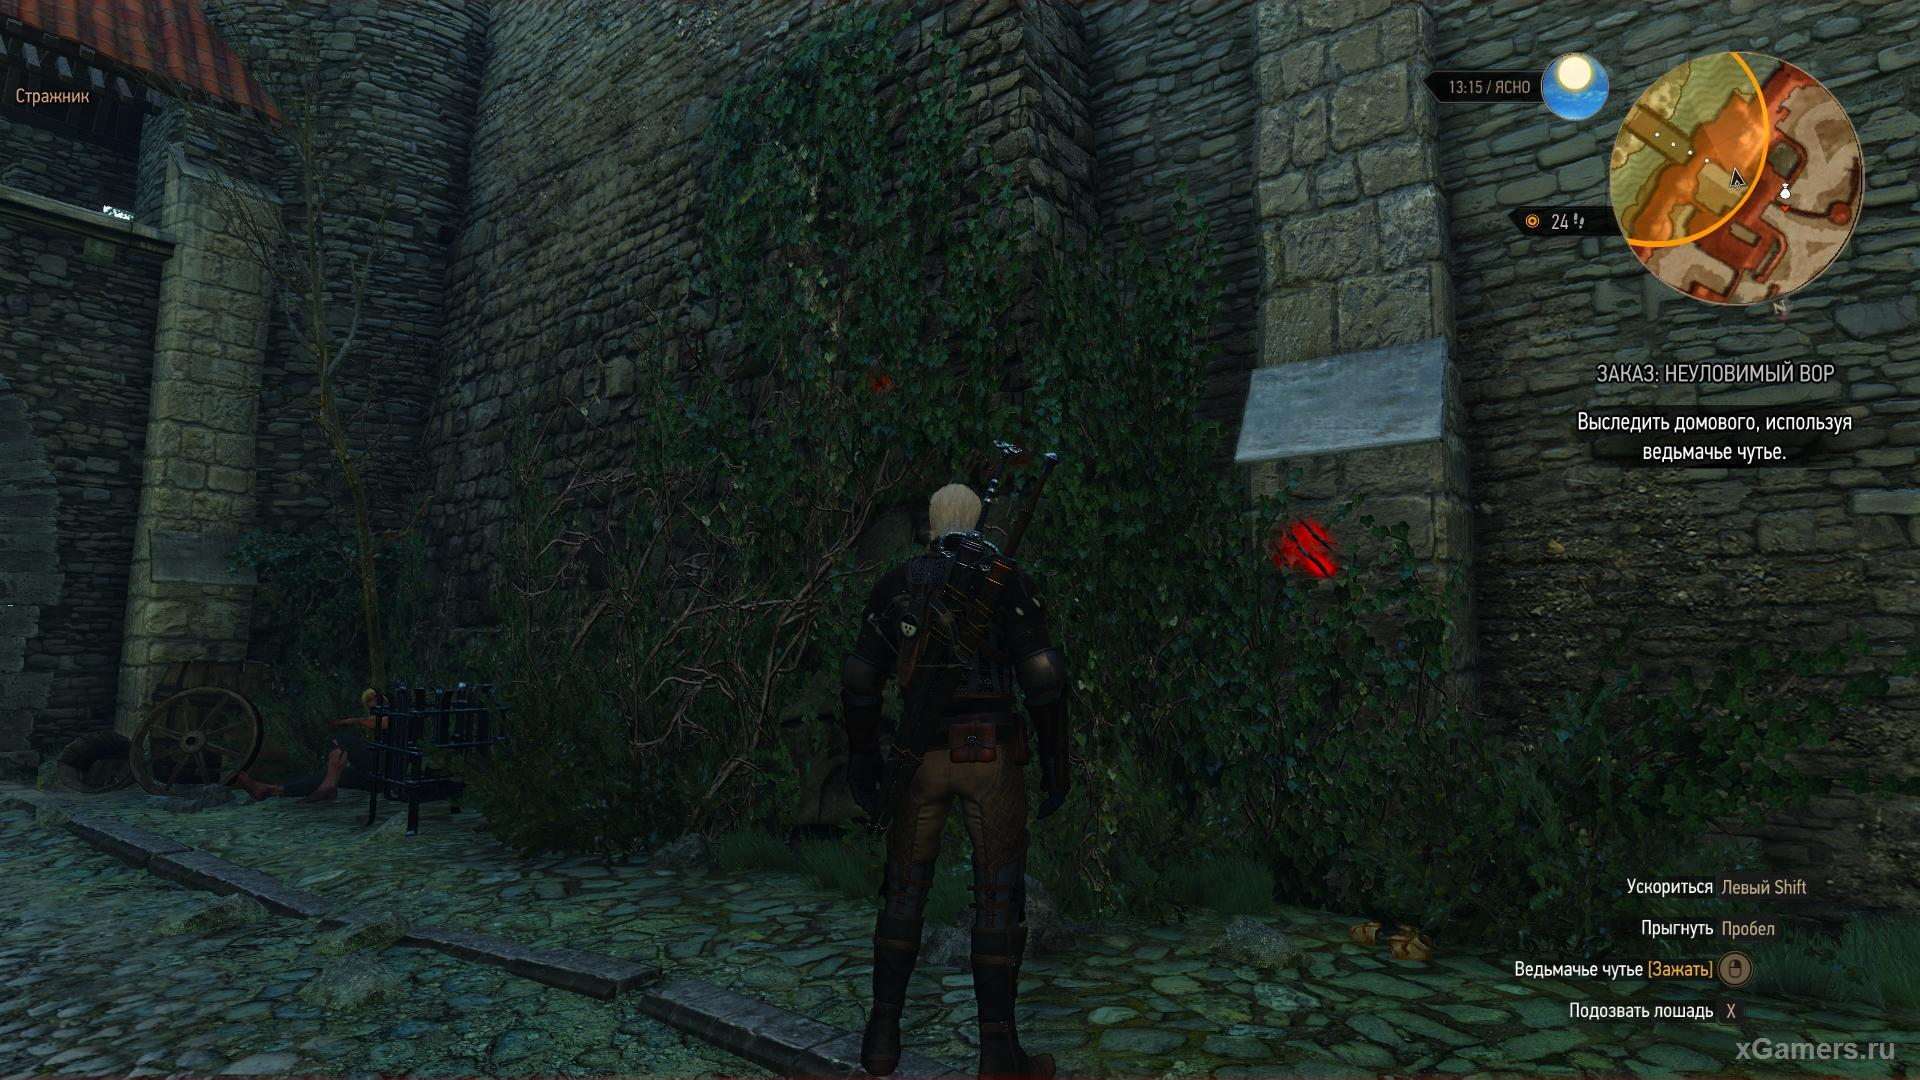 Walkthrough: An Elusive Thief - Witcher 3